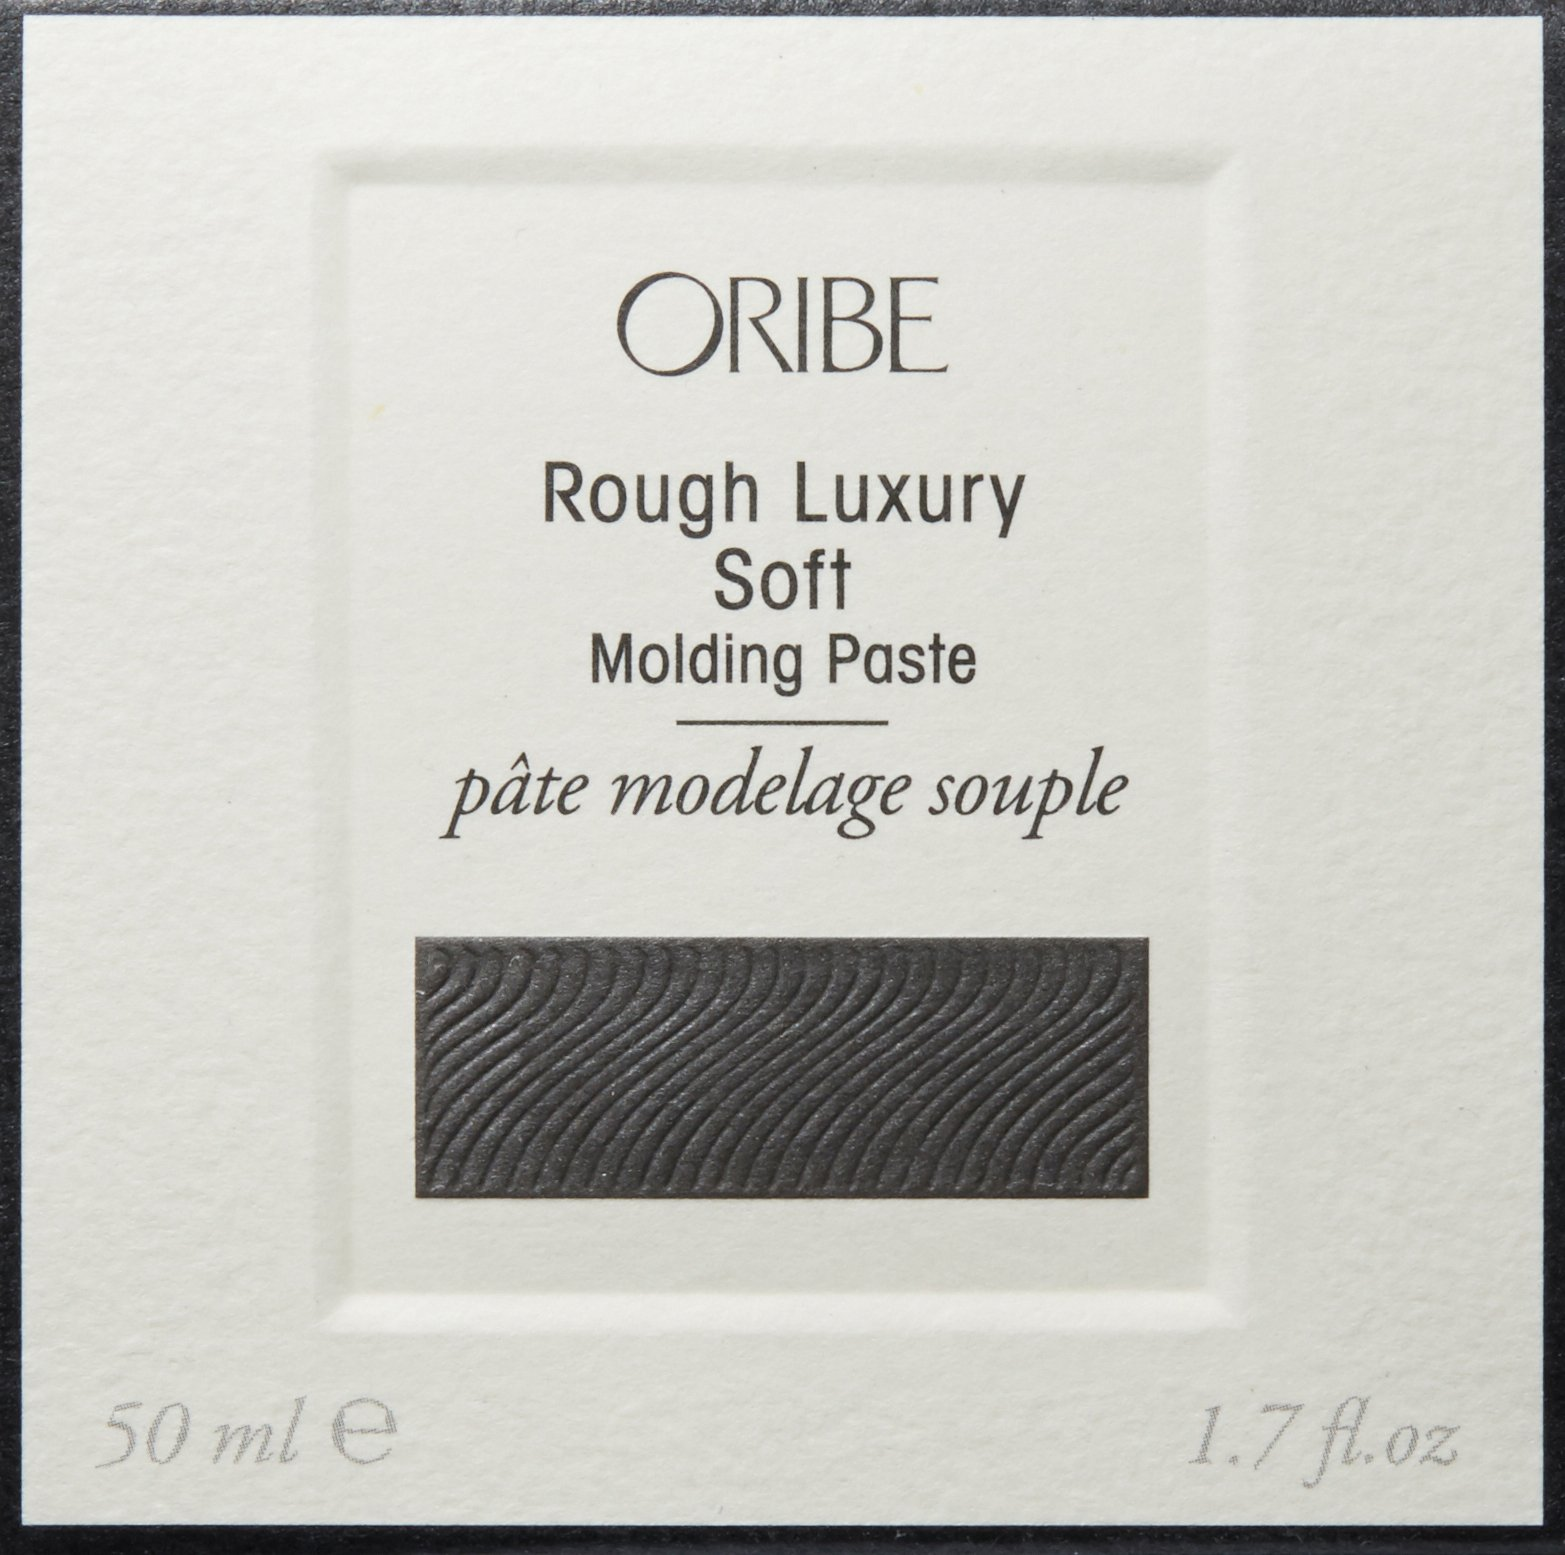 ORIBE Rough Luxury Soft Molding Paste, 1.7 fl. oz. by ORIBE (Image #3)